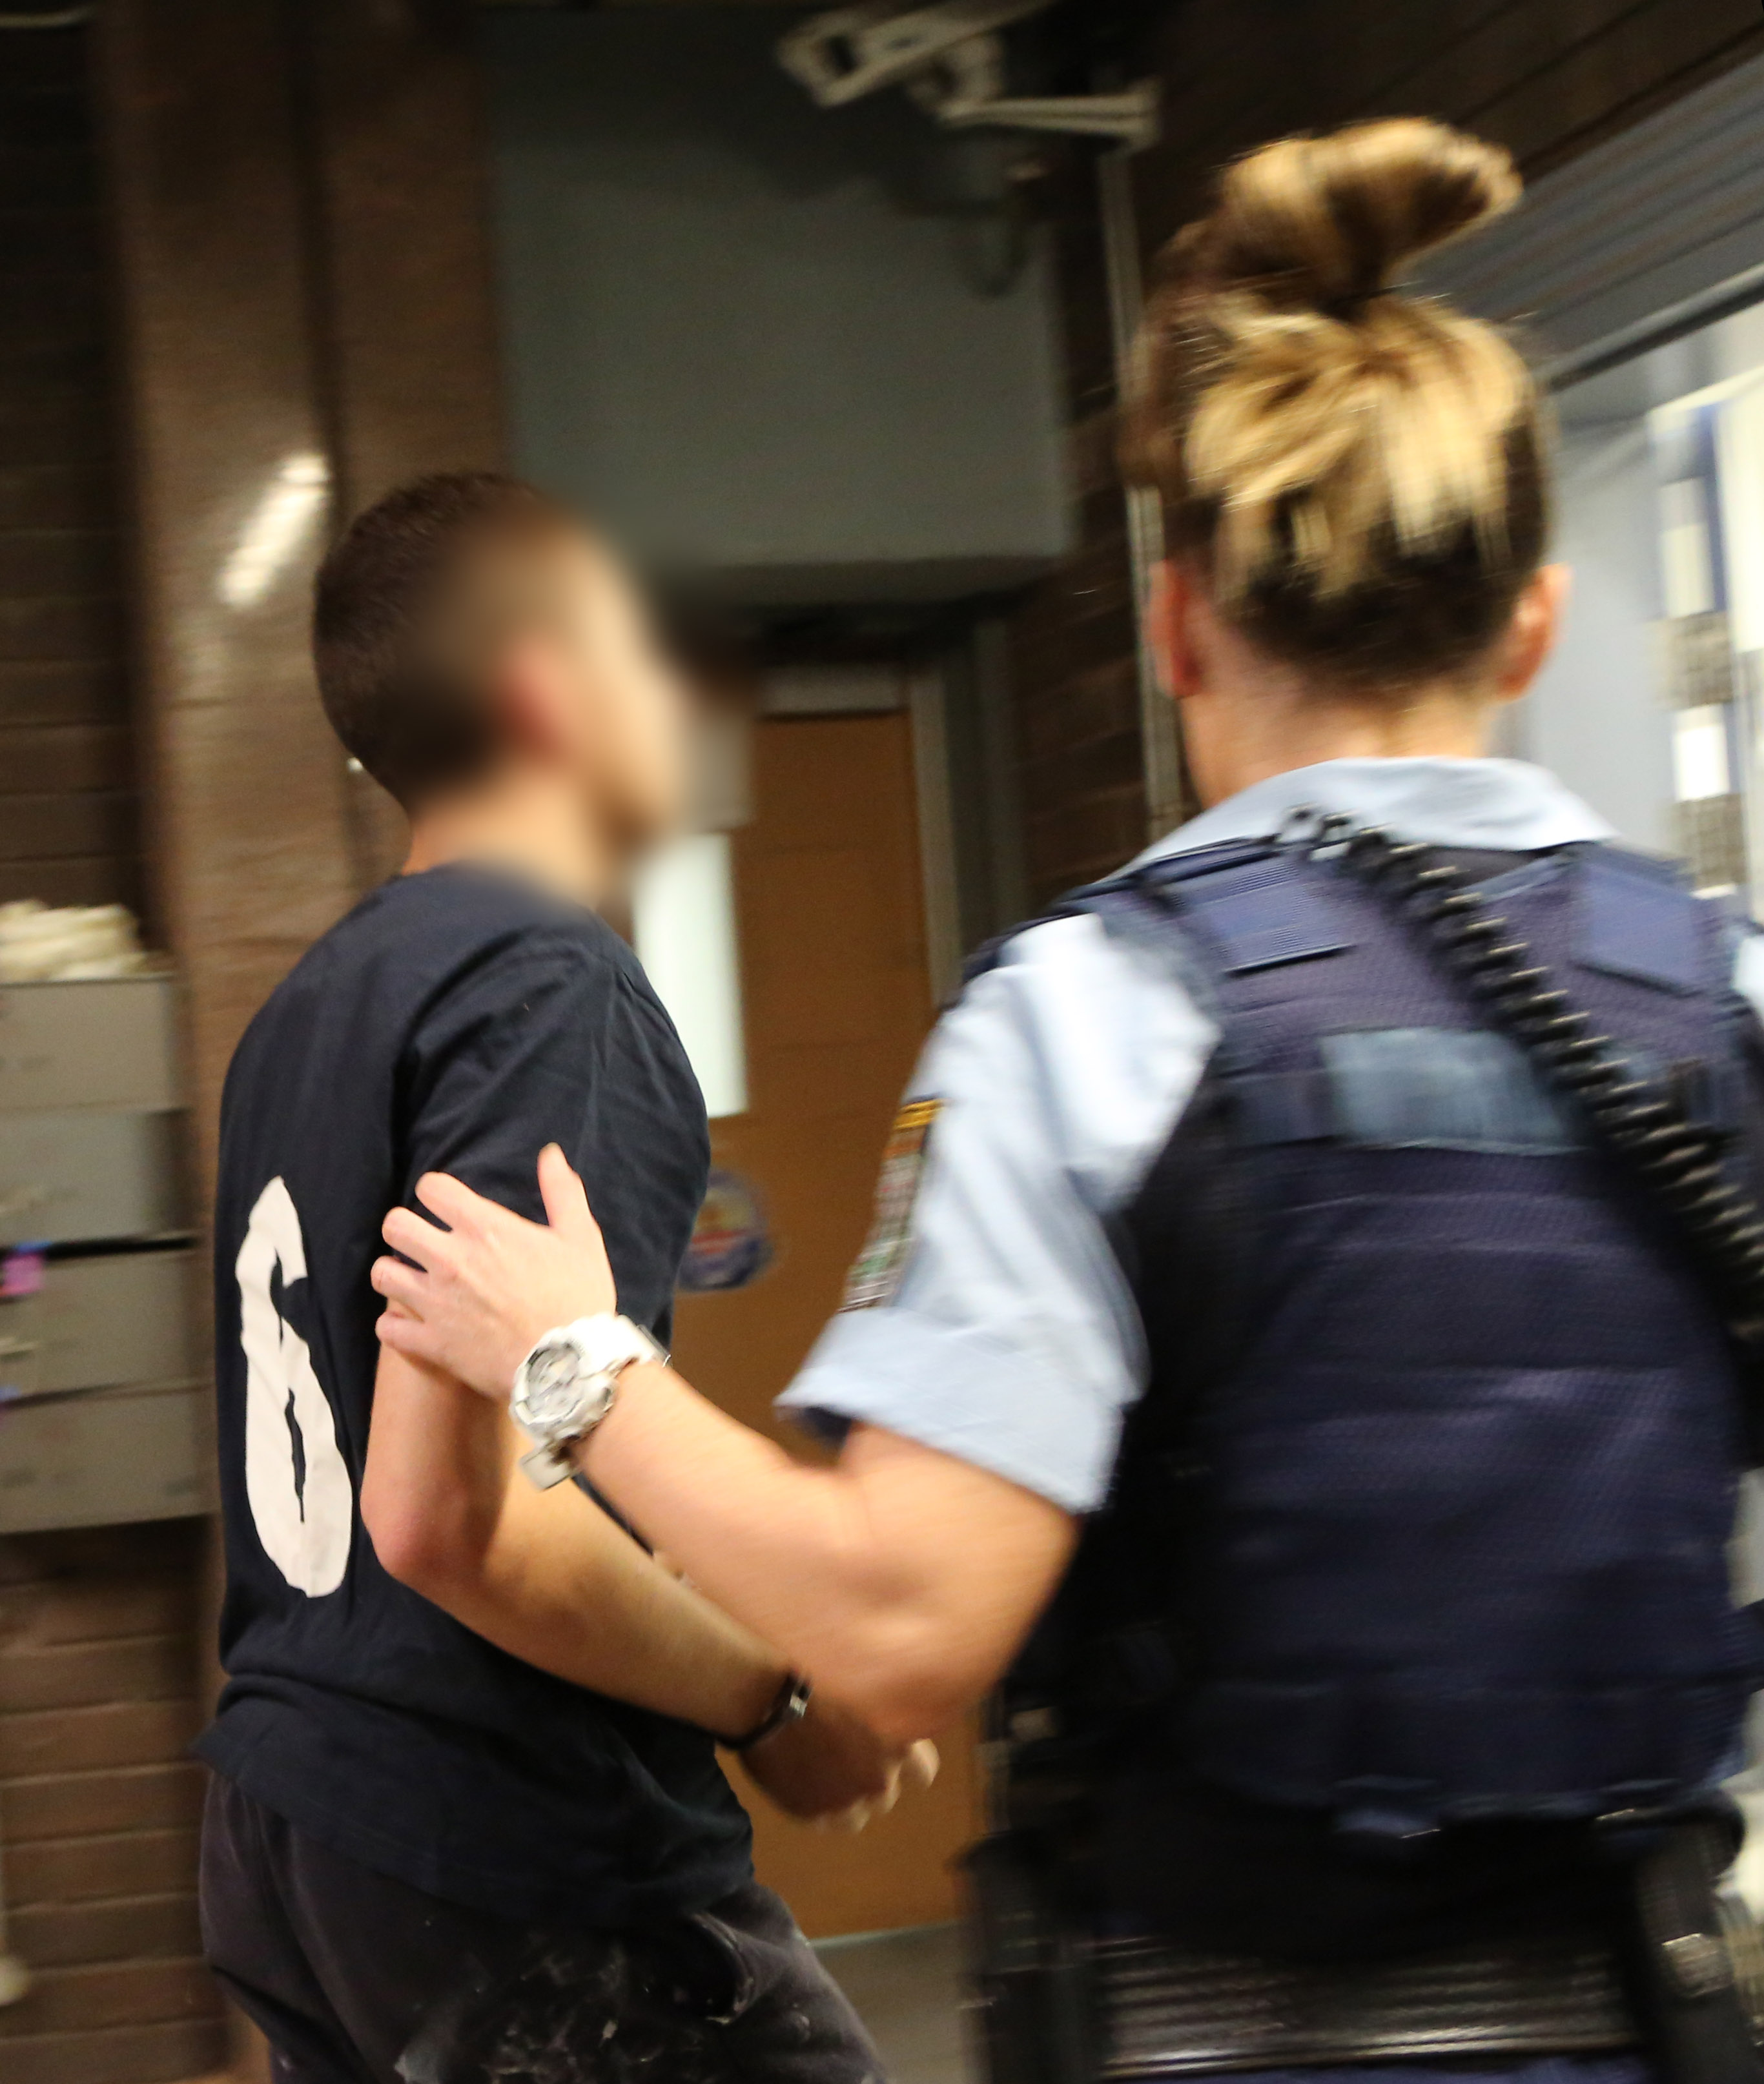 Police leading one of the accused into the station. (NSW Police Force)